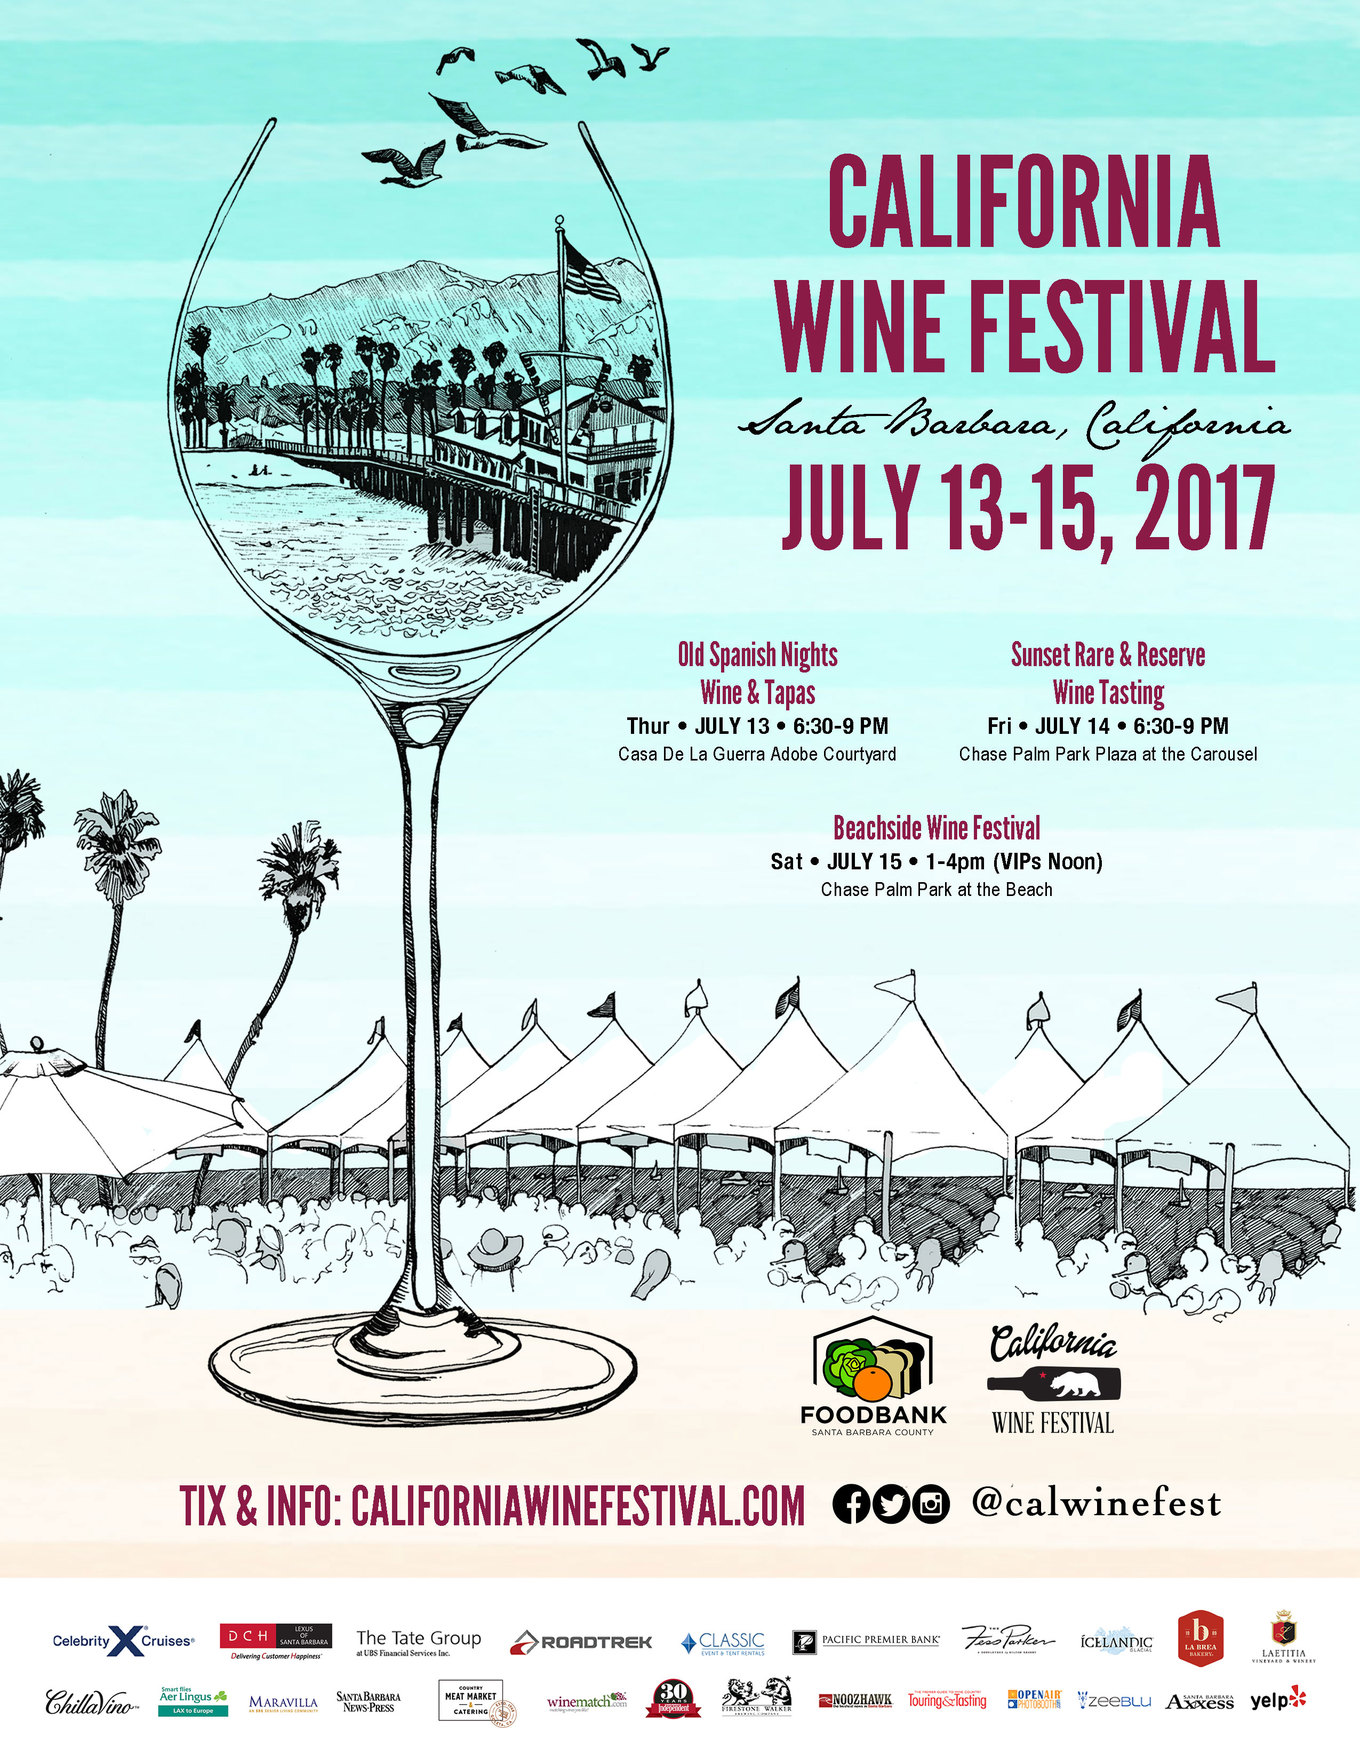 14th California Wine Festival - Santa Barbara! July 13, 14, 15, 2017